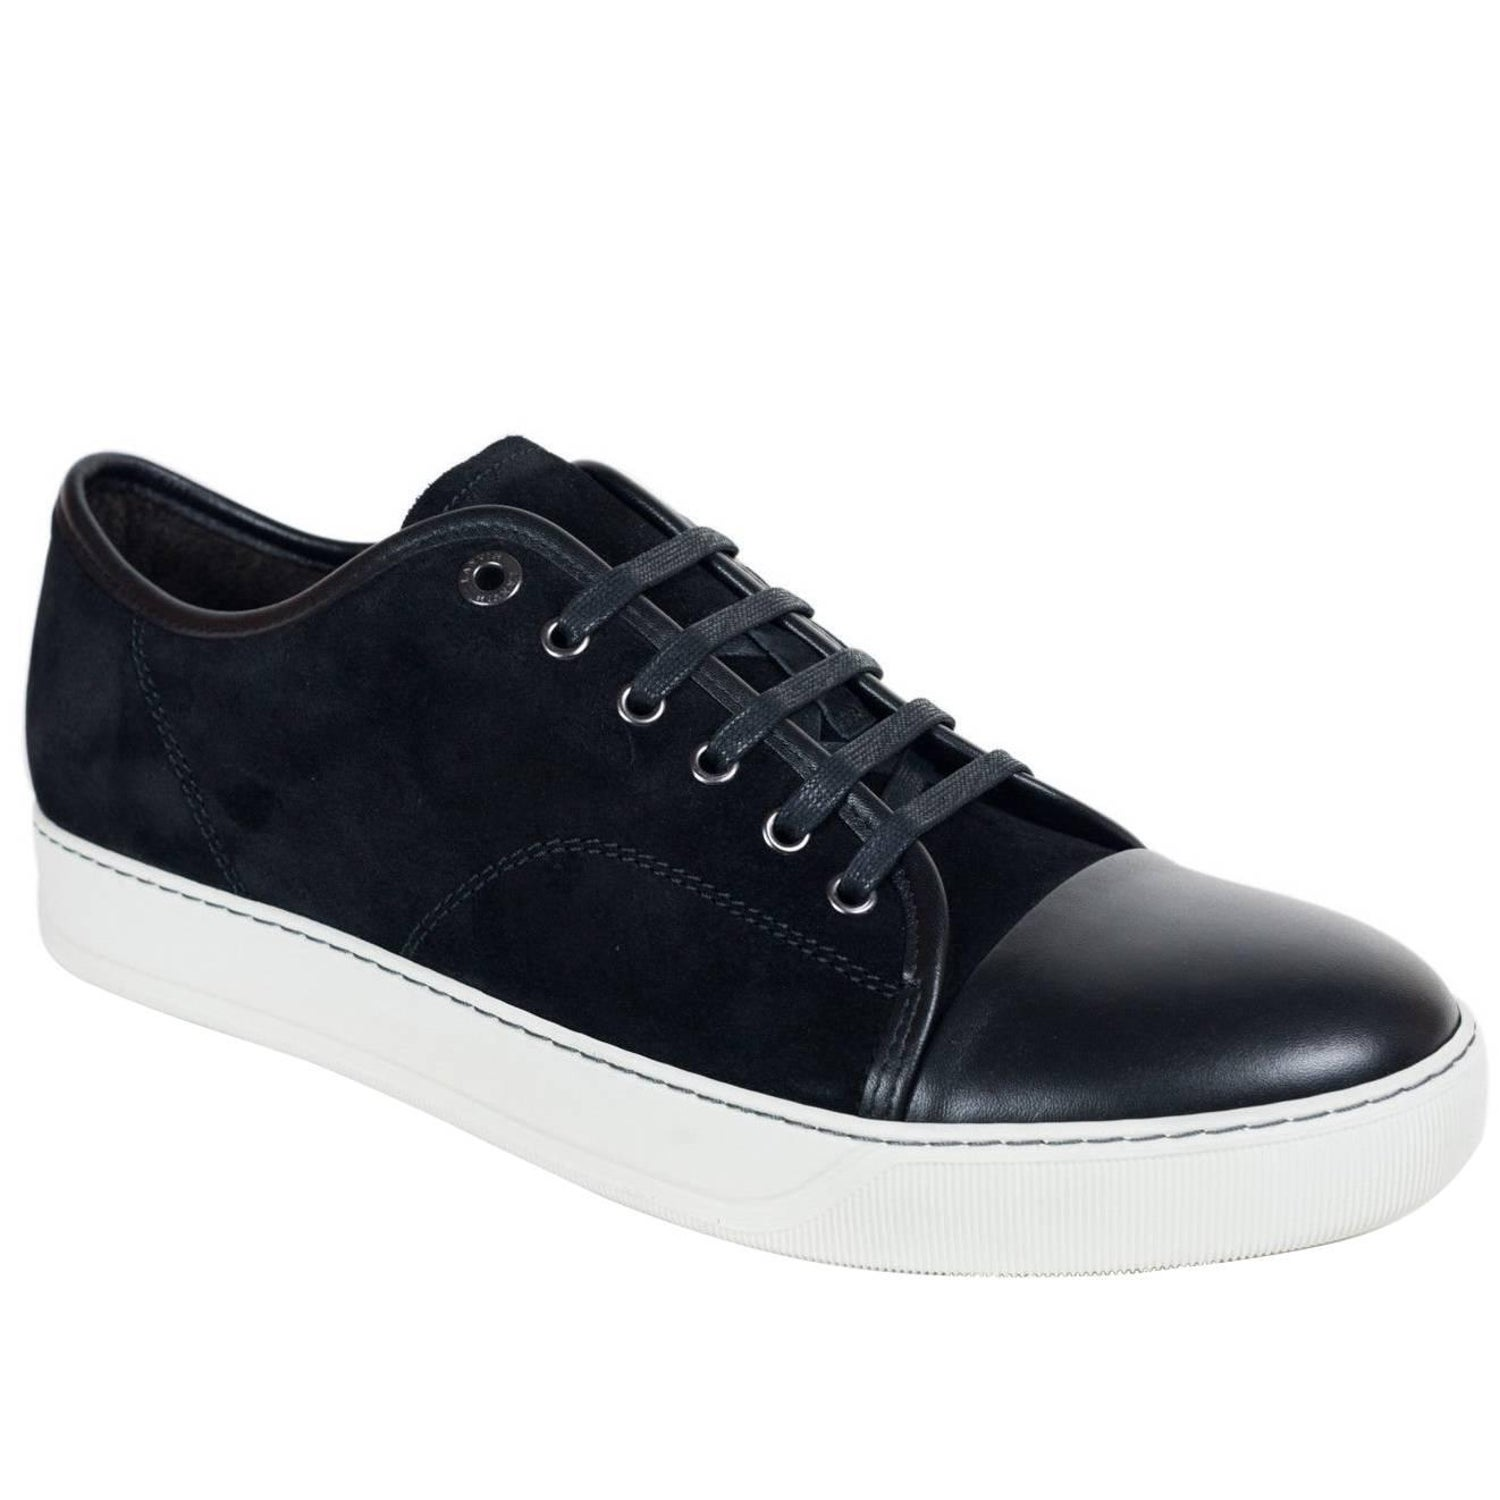 36628f6218a Lanvin Black Suede Nubuck Calfskin Cap Toe DDB1 Sneakers For Sale at 1stdibs